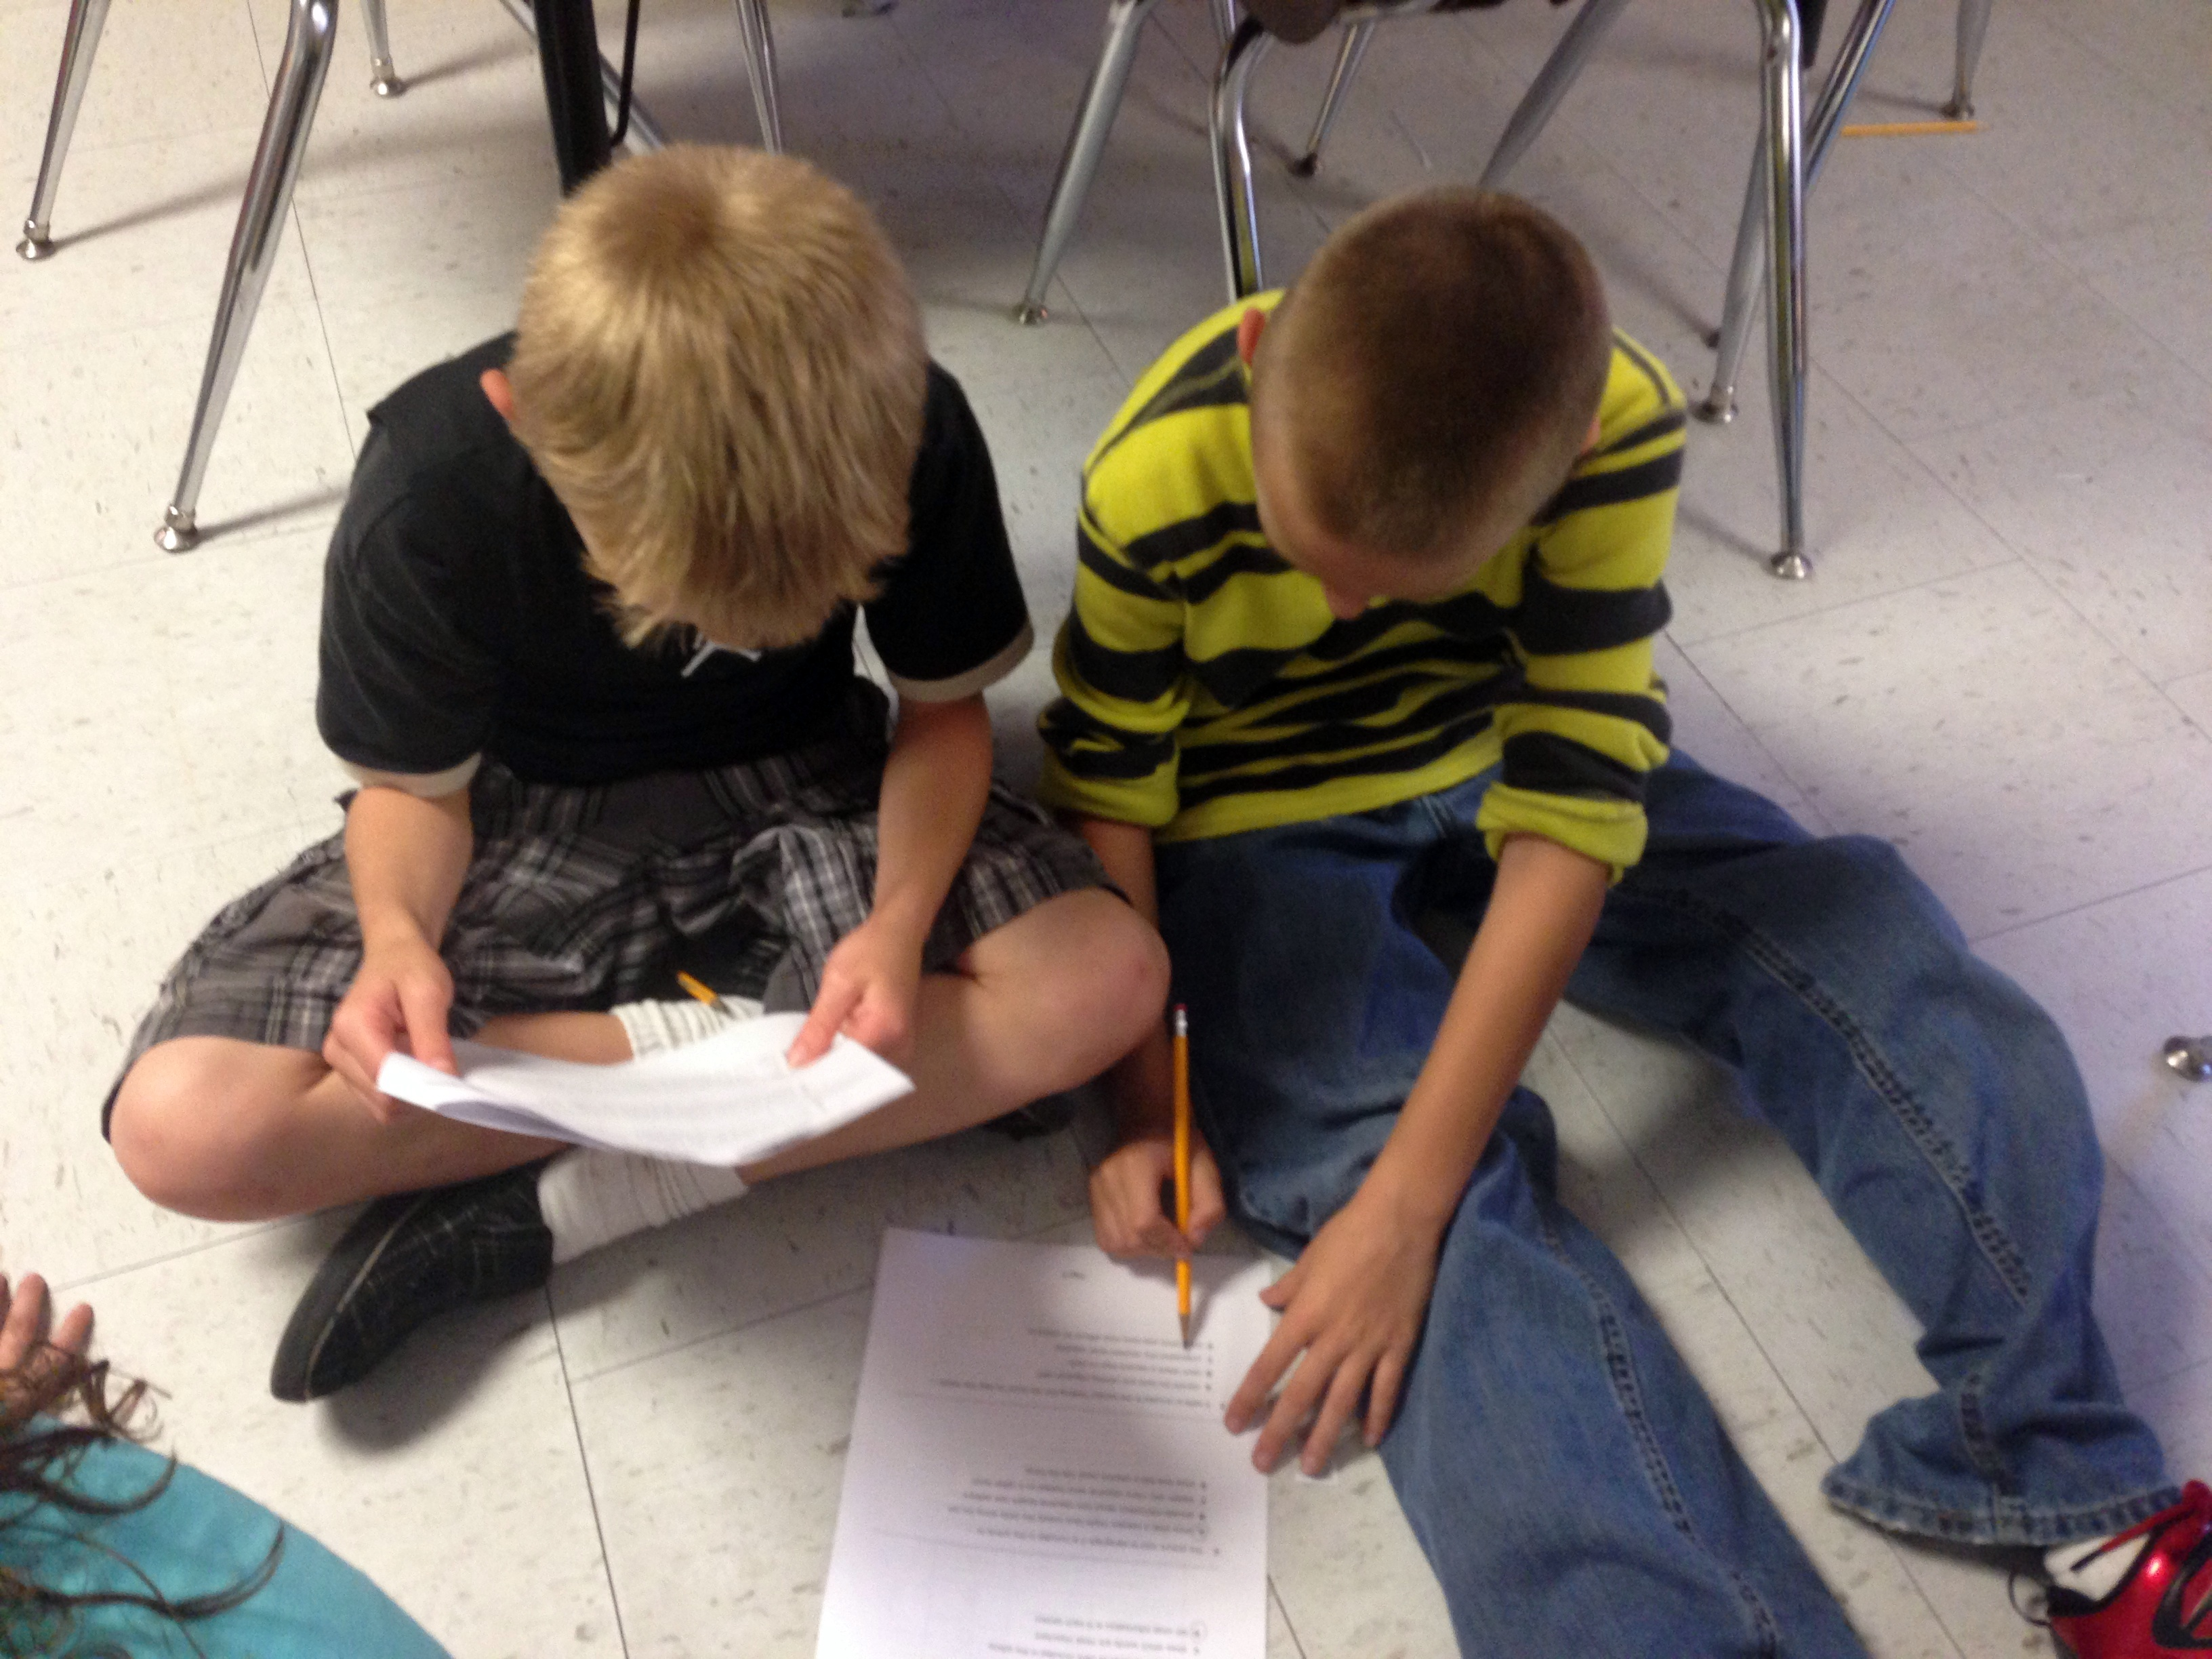 2 boys working in a club to discuss a reading passage